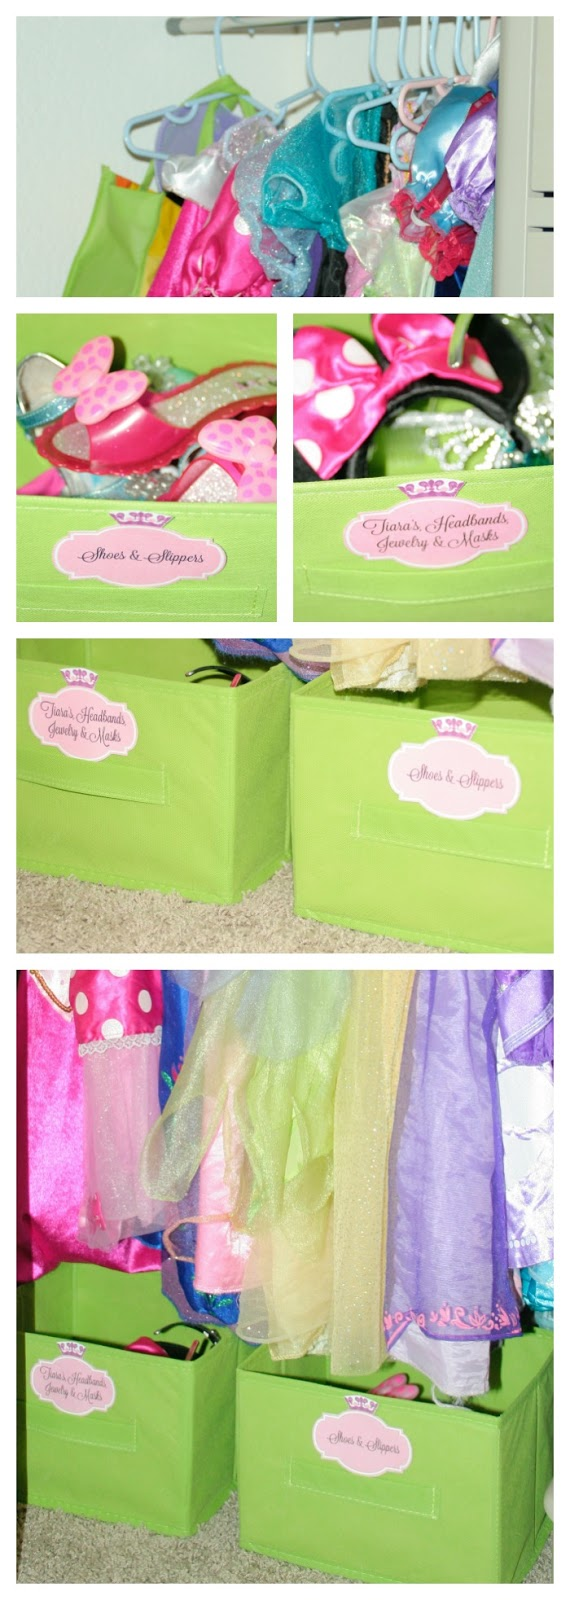 DIY cheap princess dress up station,  how to create a dream or vision board, Disney Princess Dreams, #InspireBigDreams, #DreamBigPrincess, #CollectiveBias, Disney Princess Royal Shimmer Dolls, Sing and Shimmer Princess Rapunzel, Ariel's Sea Castle